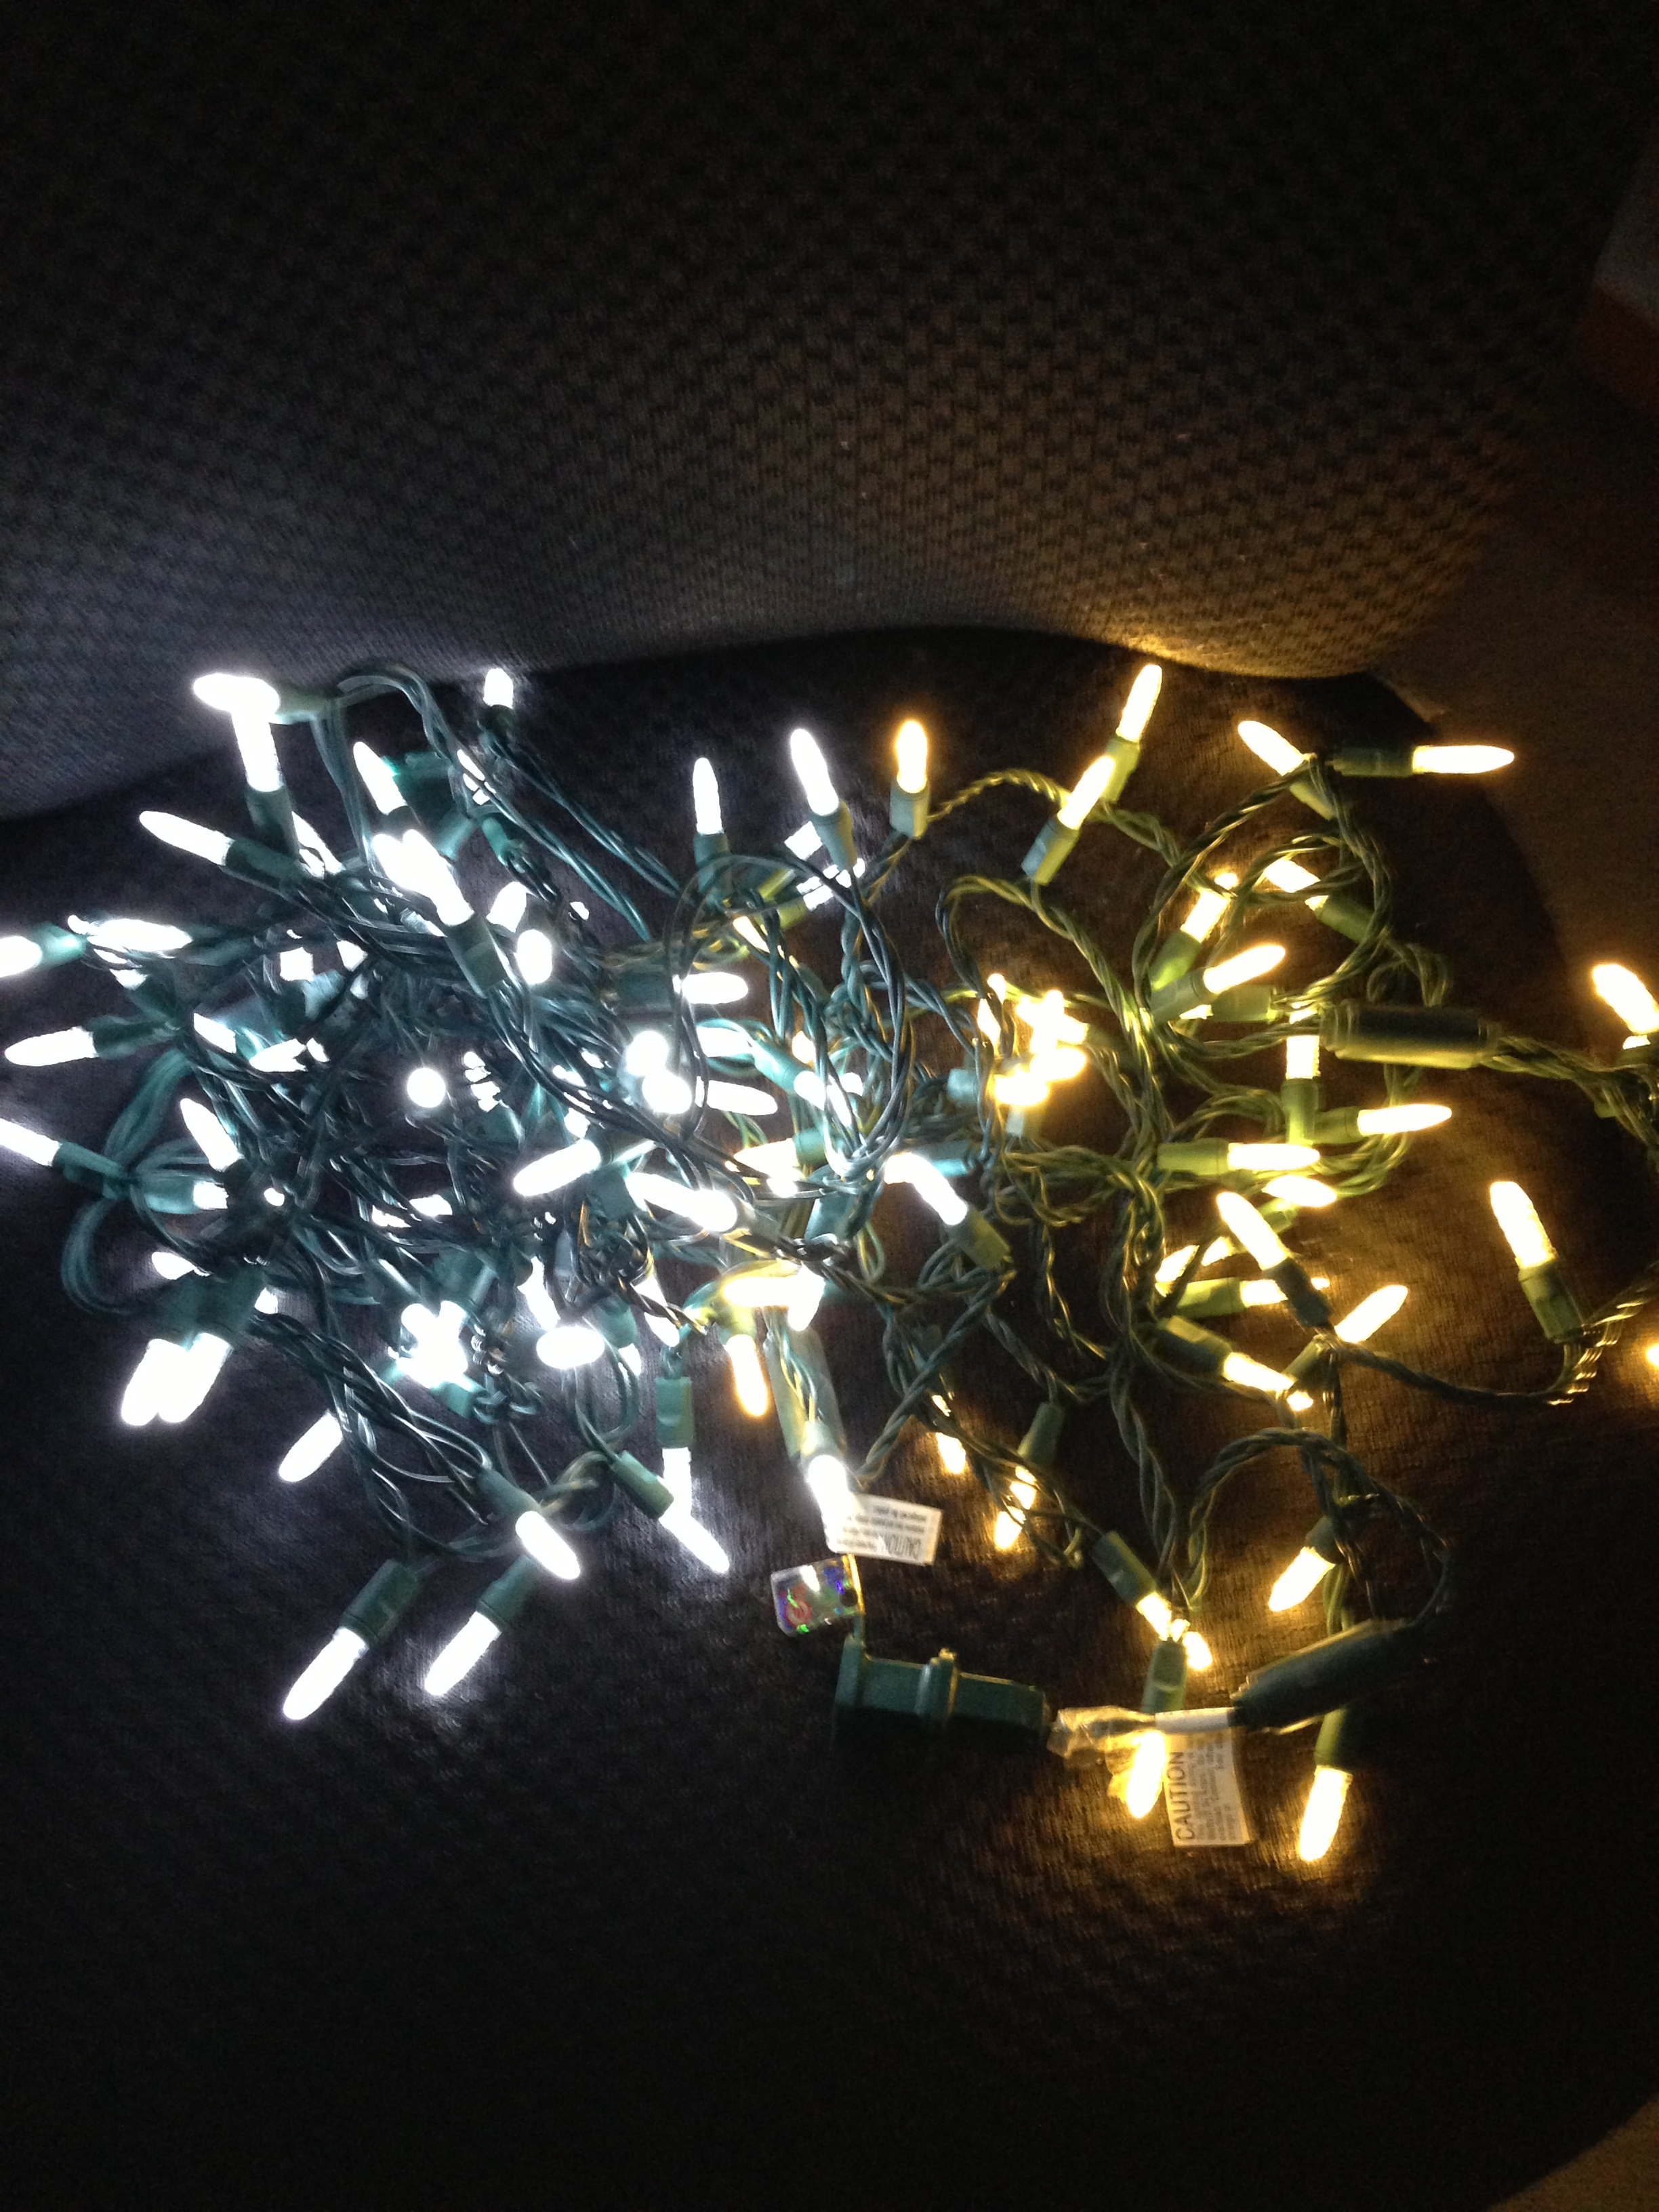 Led S That Look Like Incandescent L E D S Planetchristmas